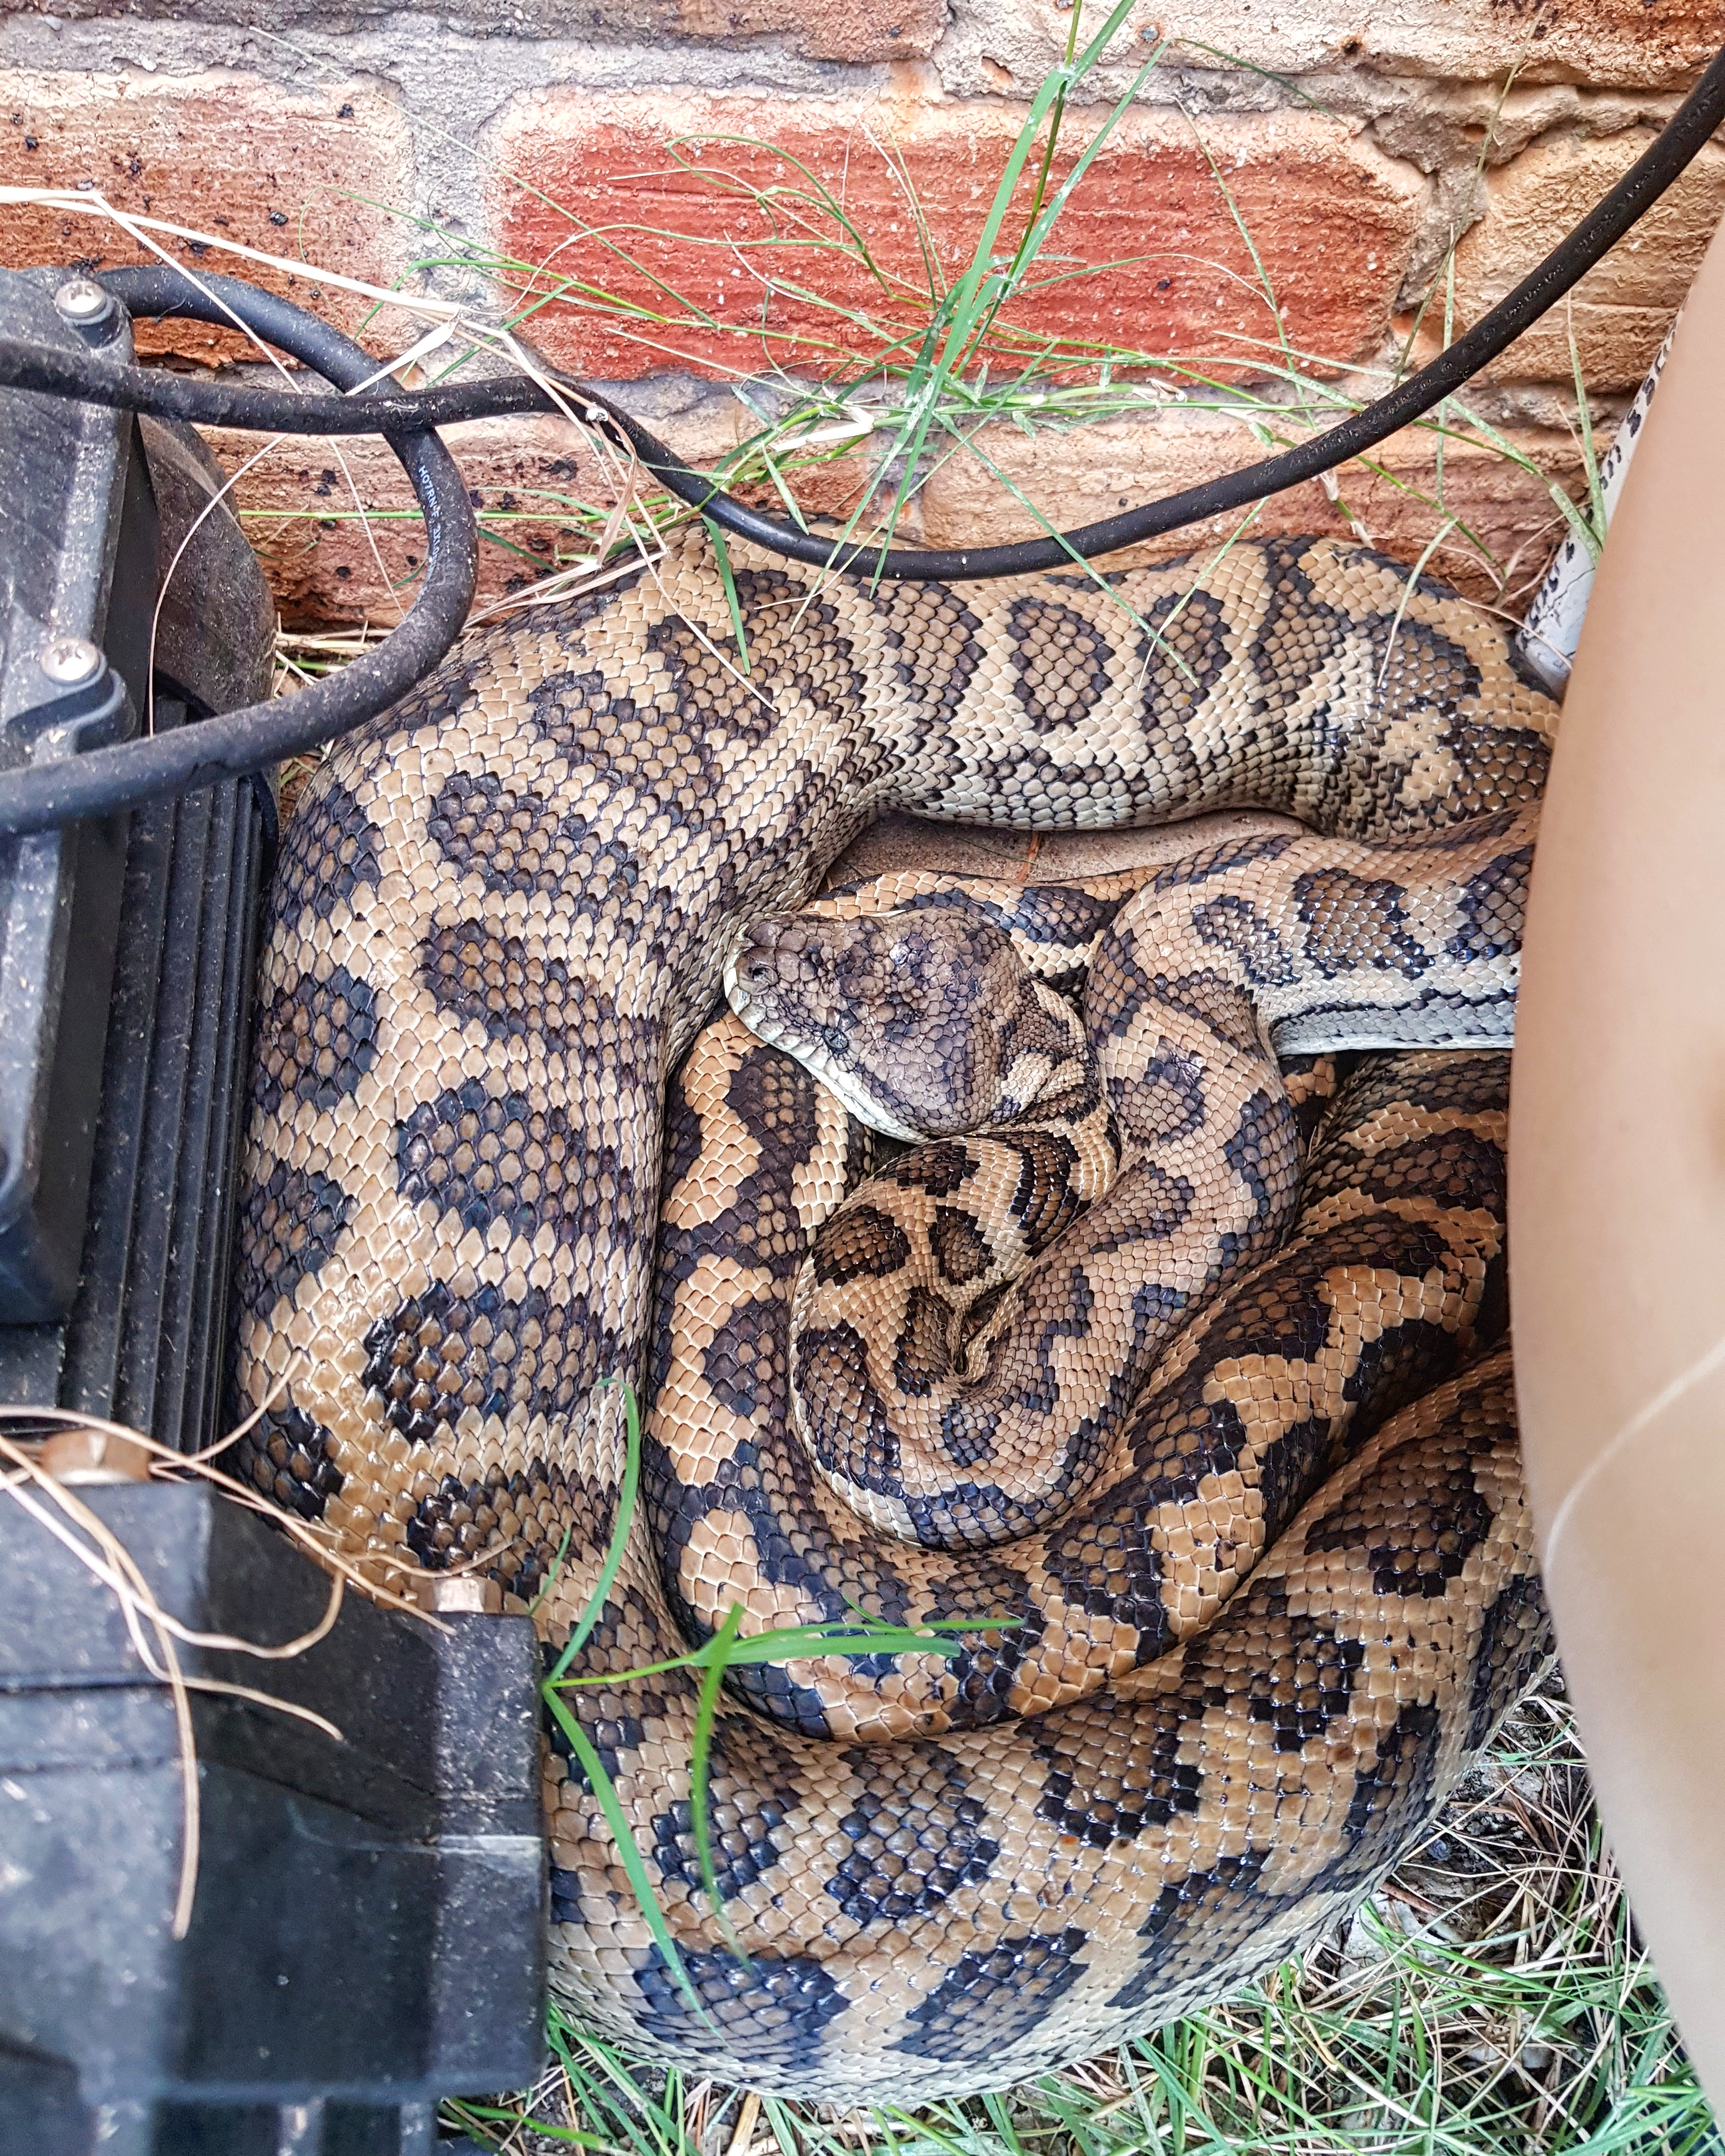 snake curled up next to water pump